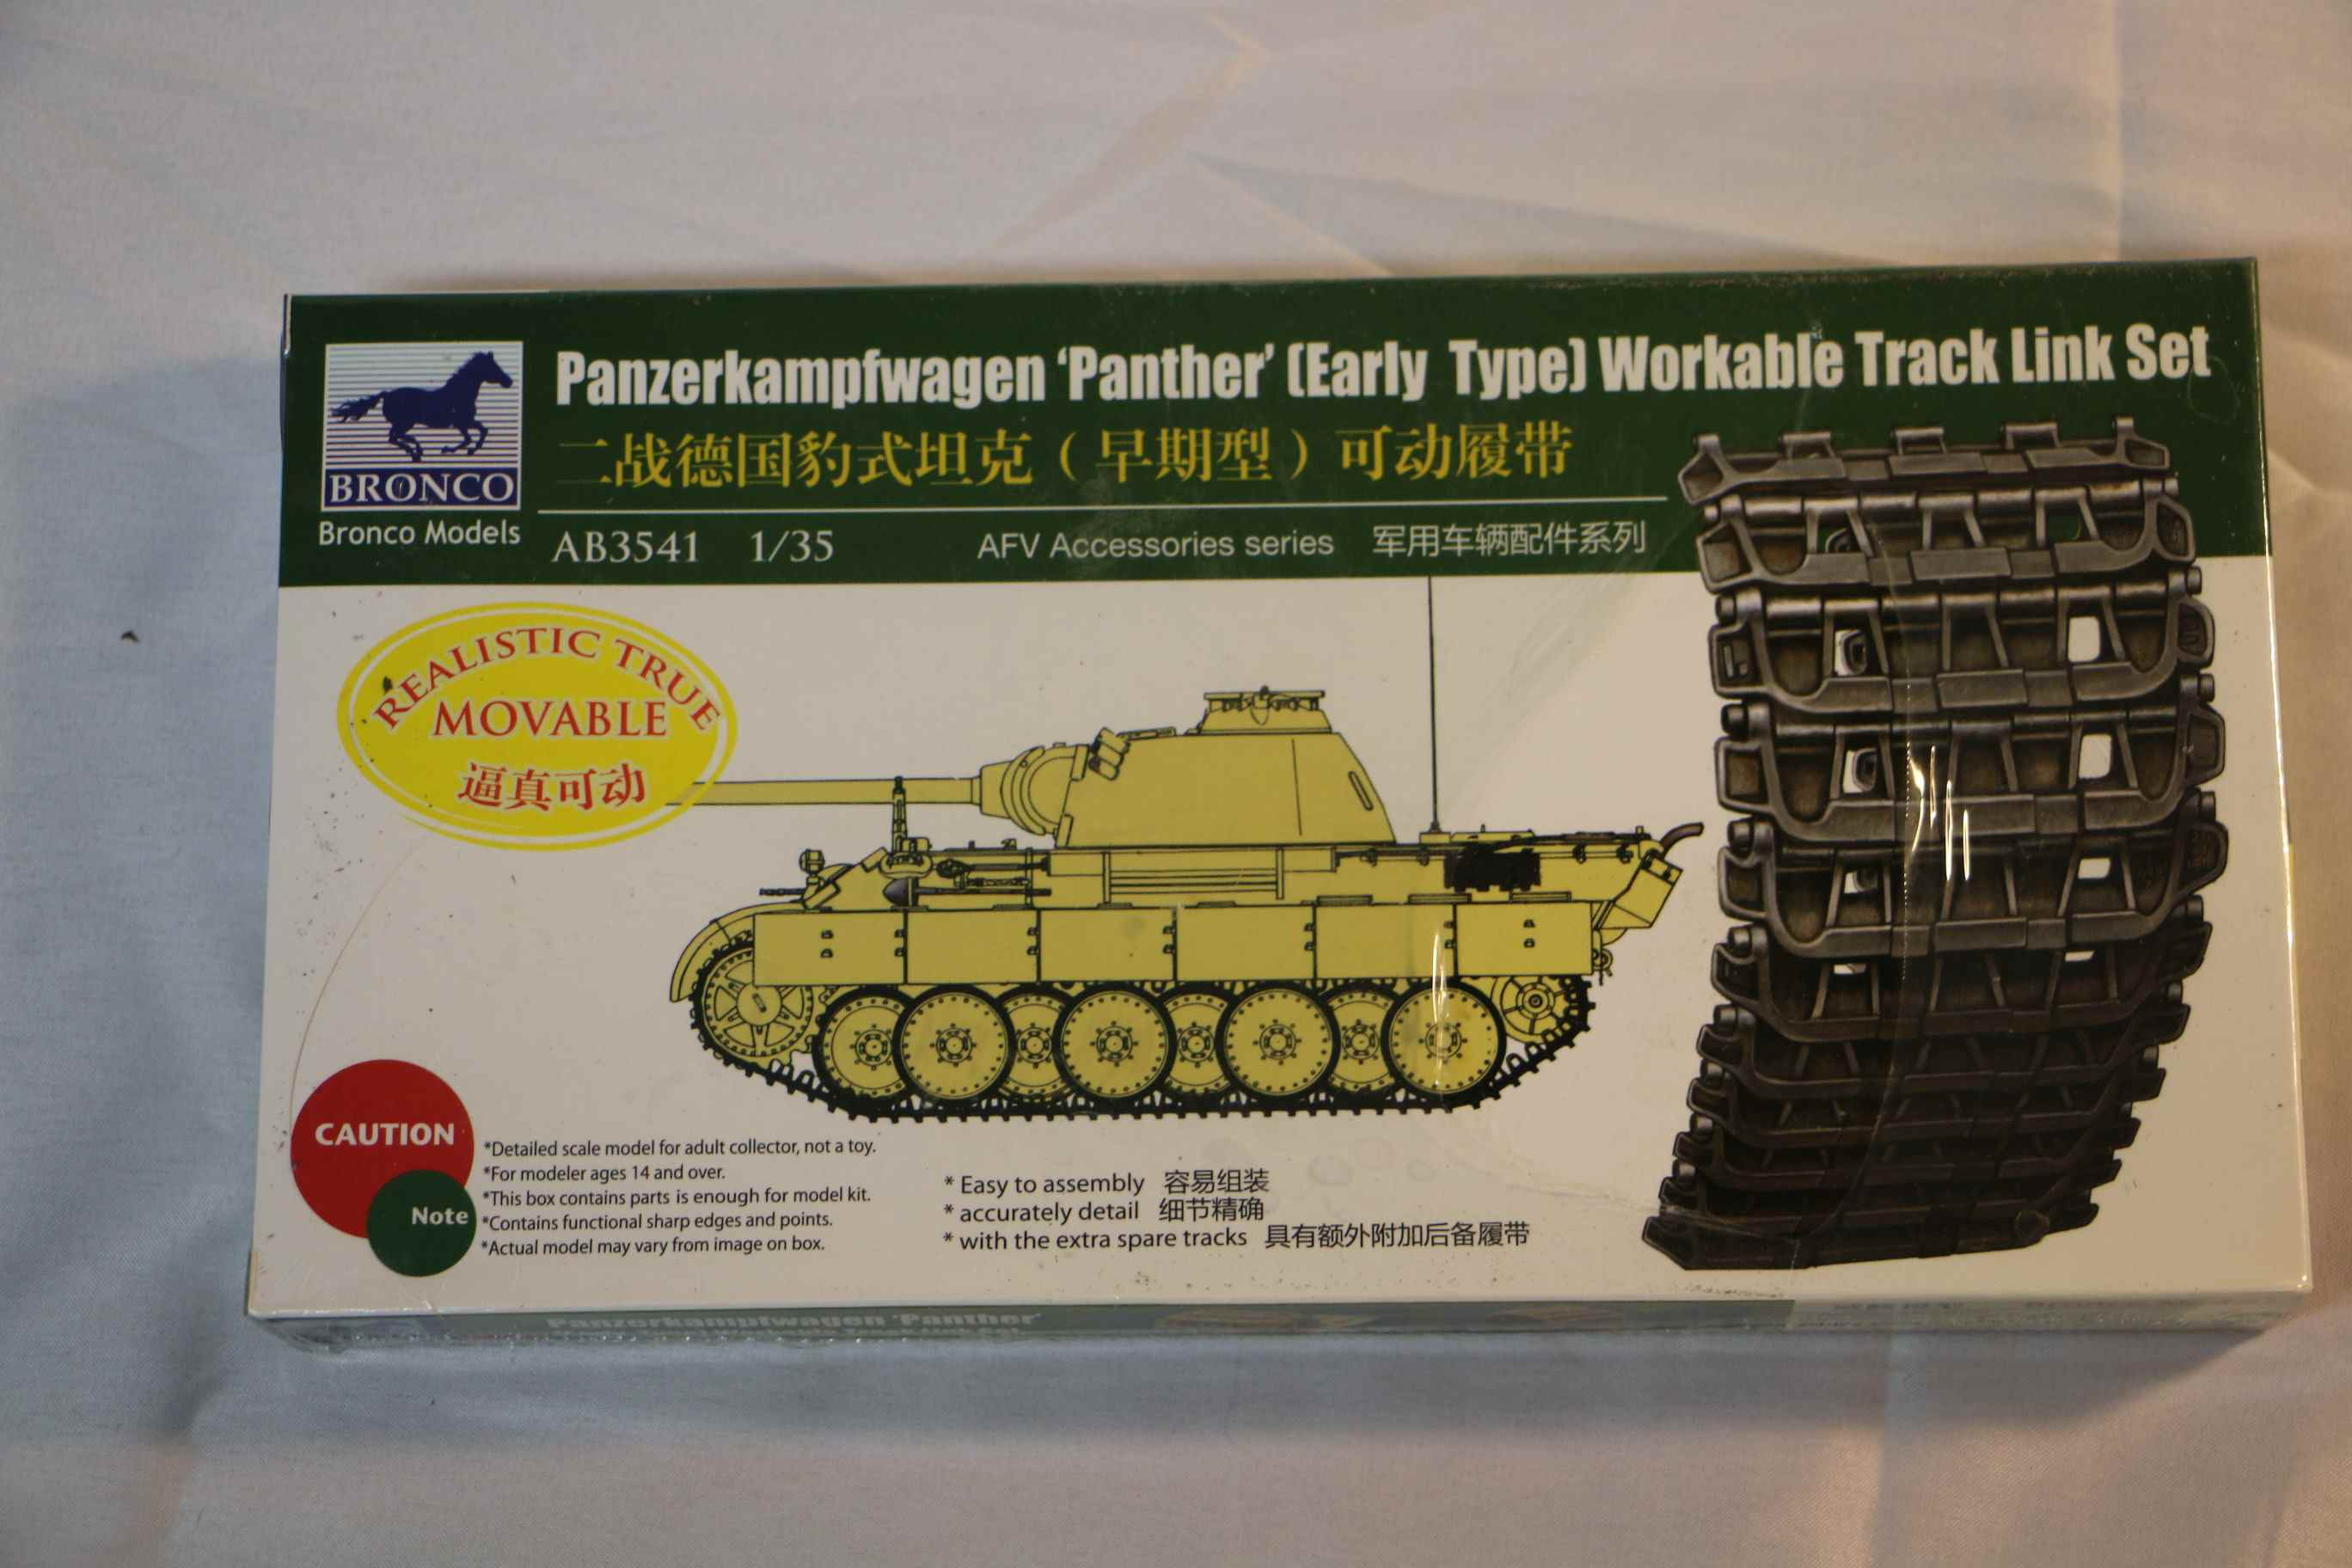 BROAB3541 - Bronco 1/35 Panther Early Working Track